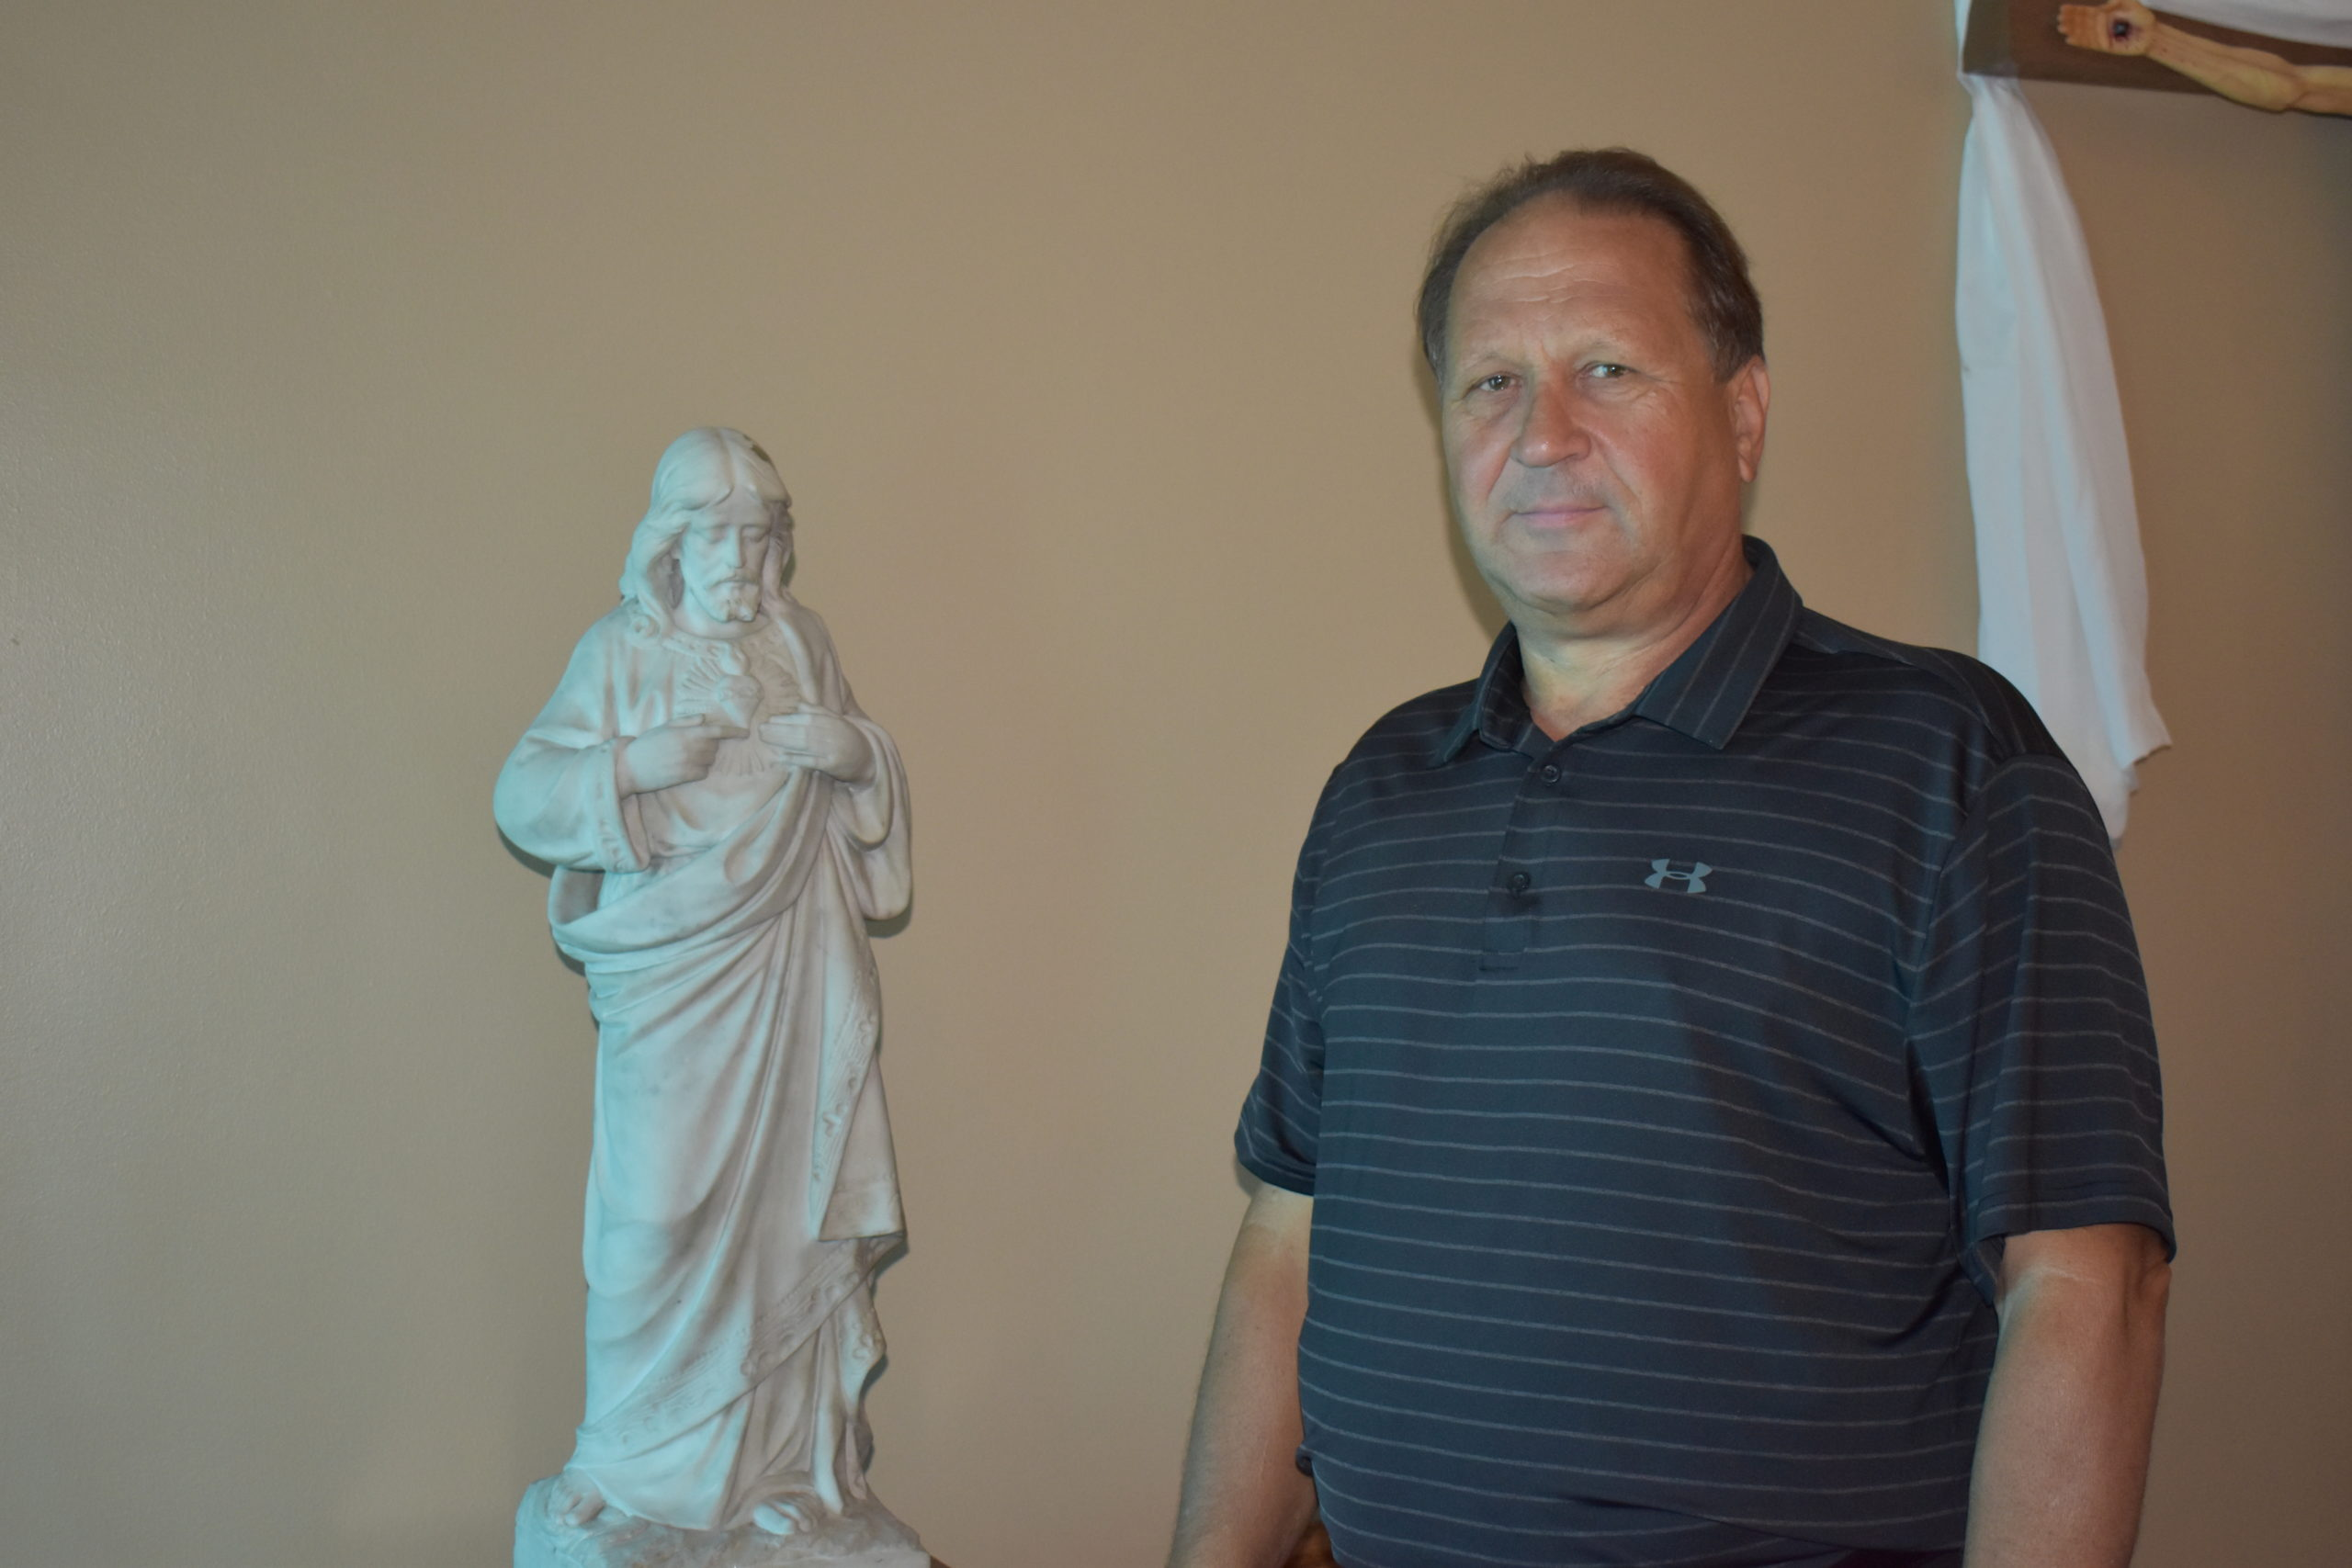 Mark Ferrara stands next to a statue of Jesus in the chapel of Kennedy Catholic High School. Ferrara has been named president of the Kennedy Catholic Family of Schools.